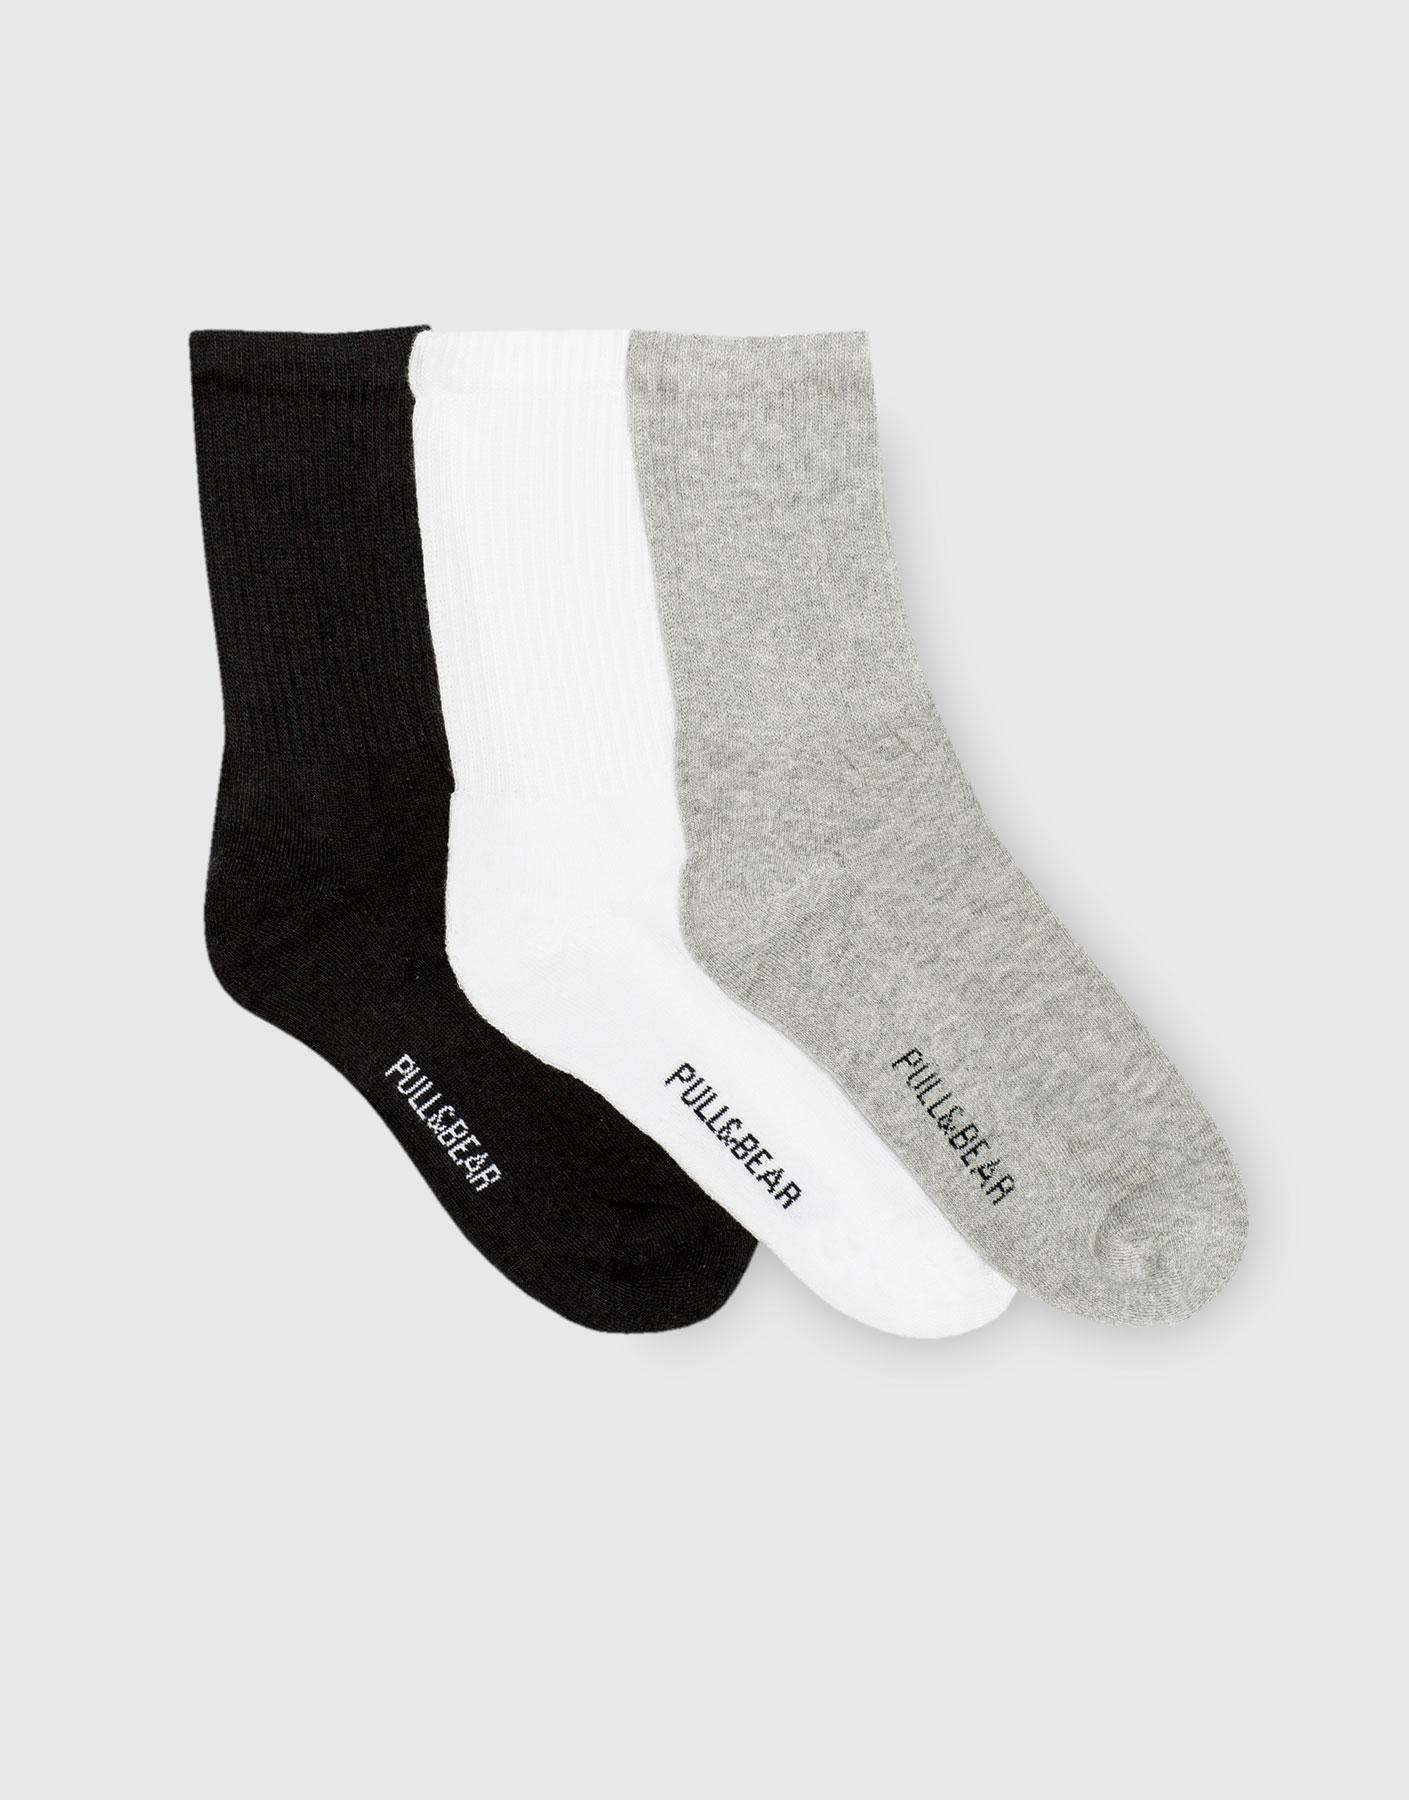 3-pack of long socks